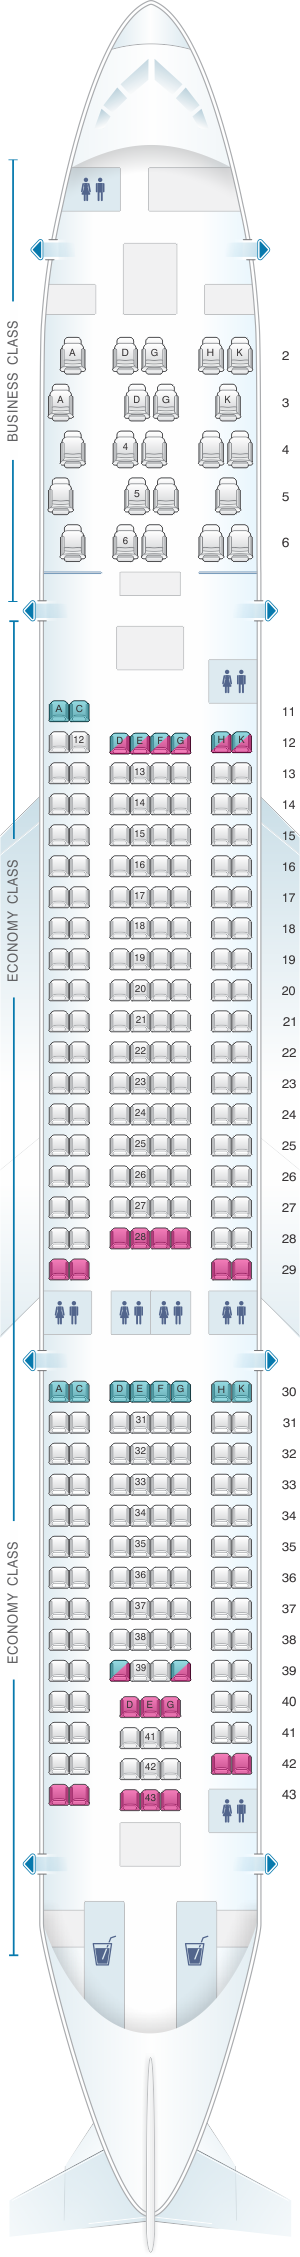 Seat map for Aer Lingus Airbus A330 200 Config. 1